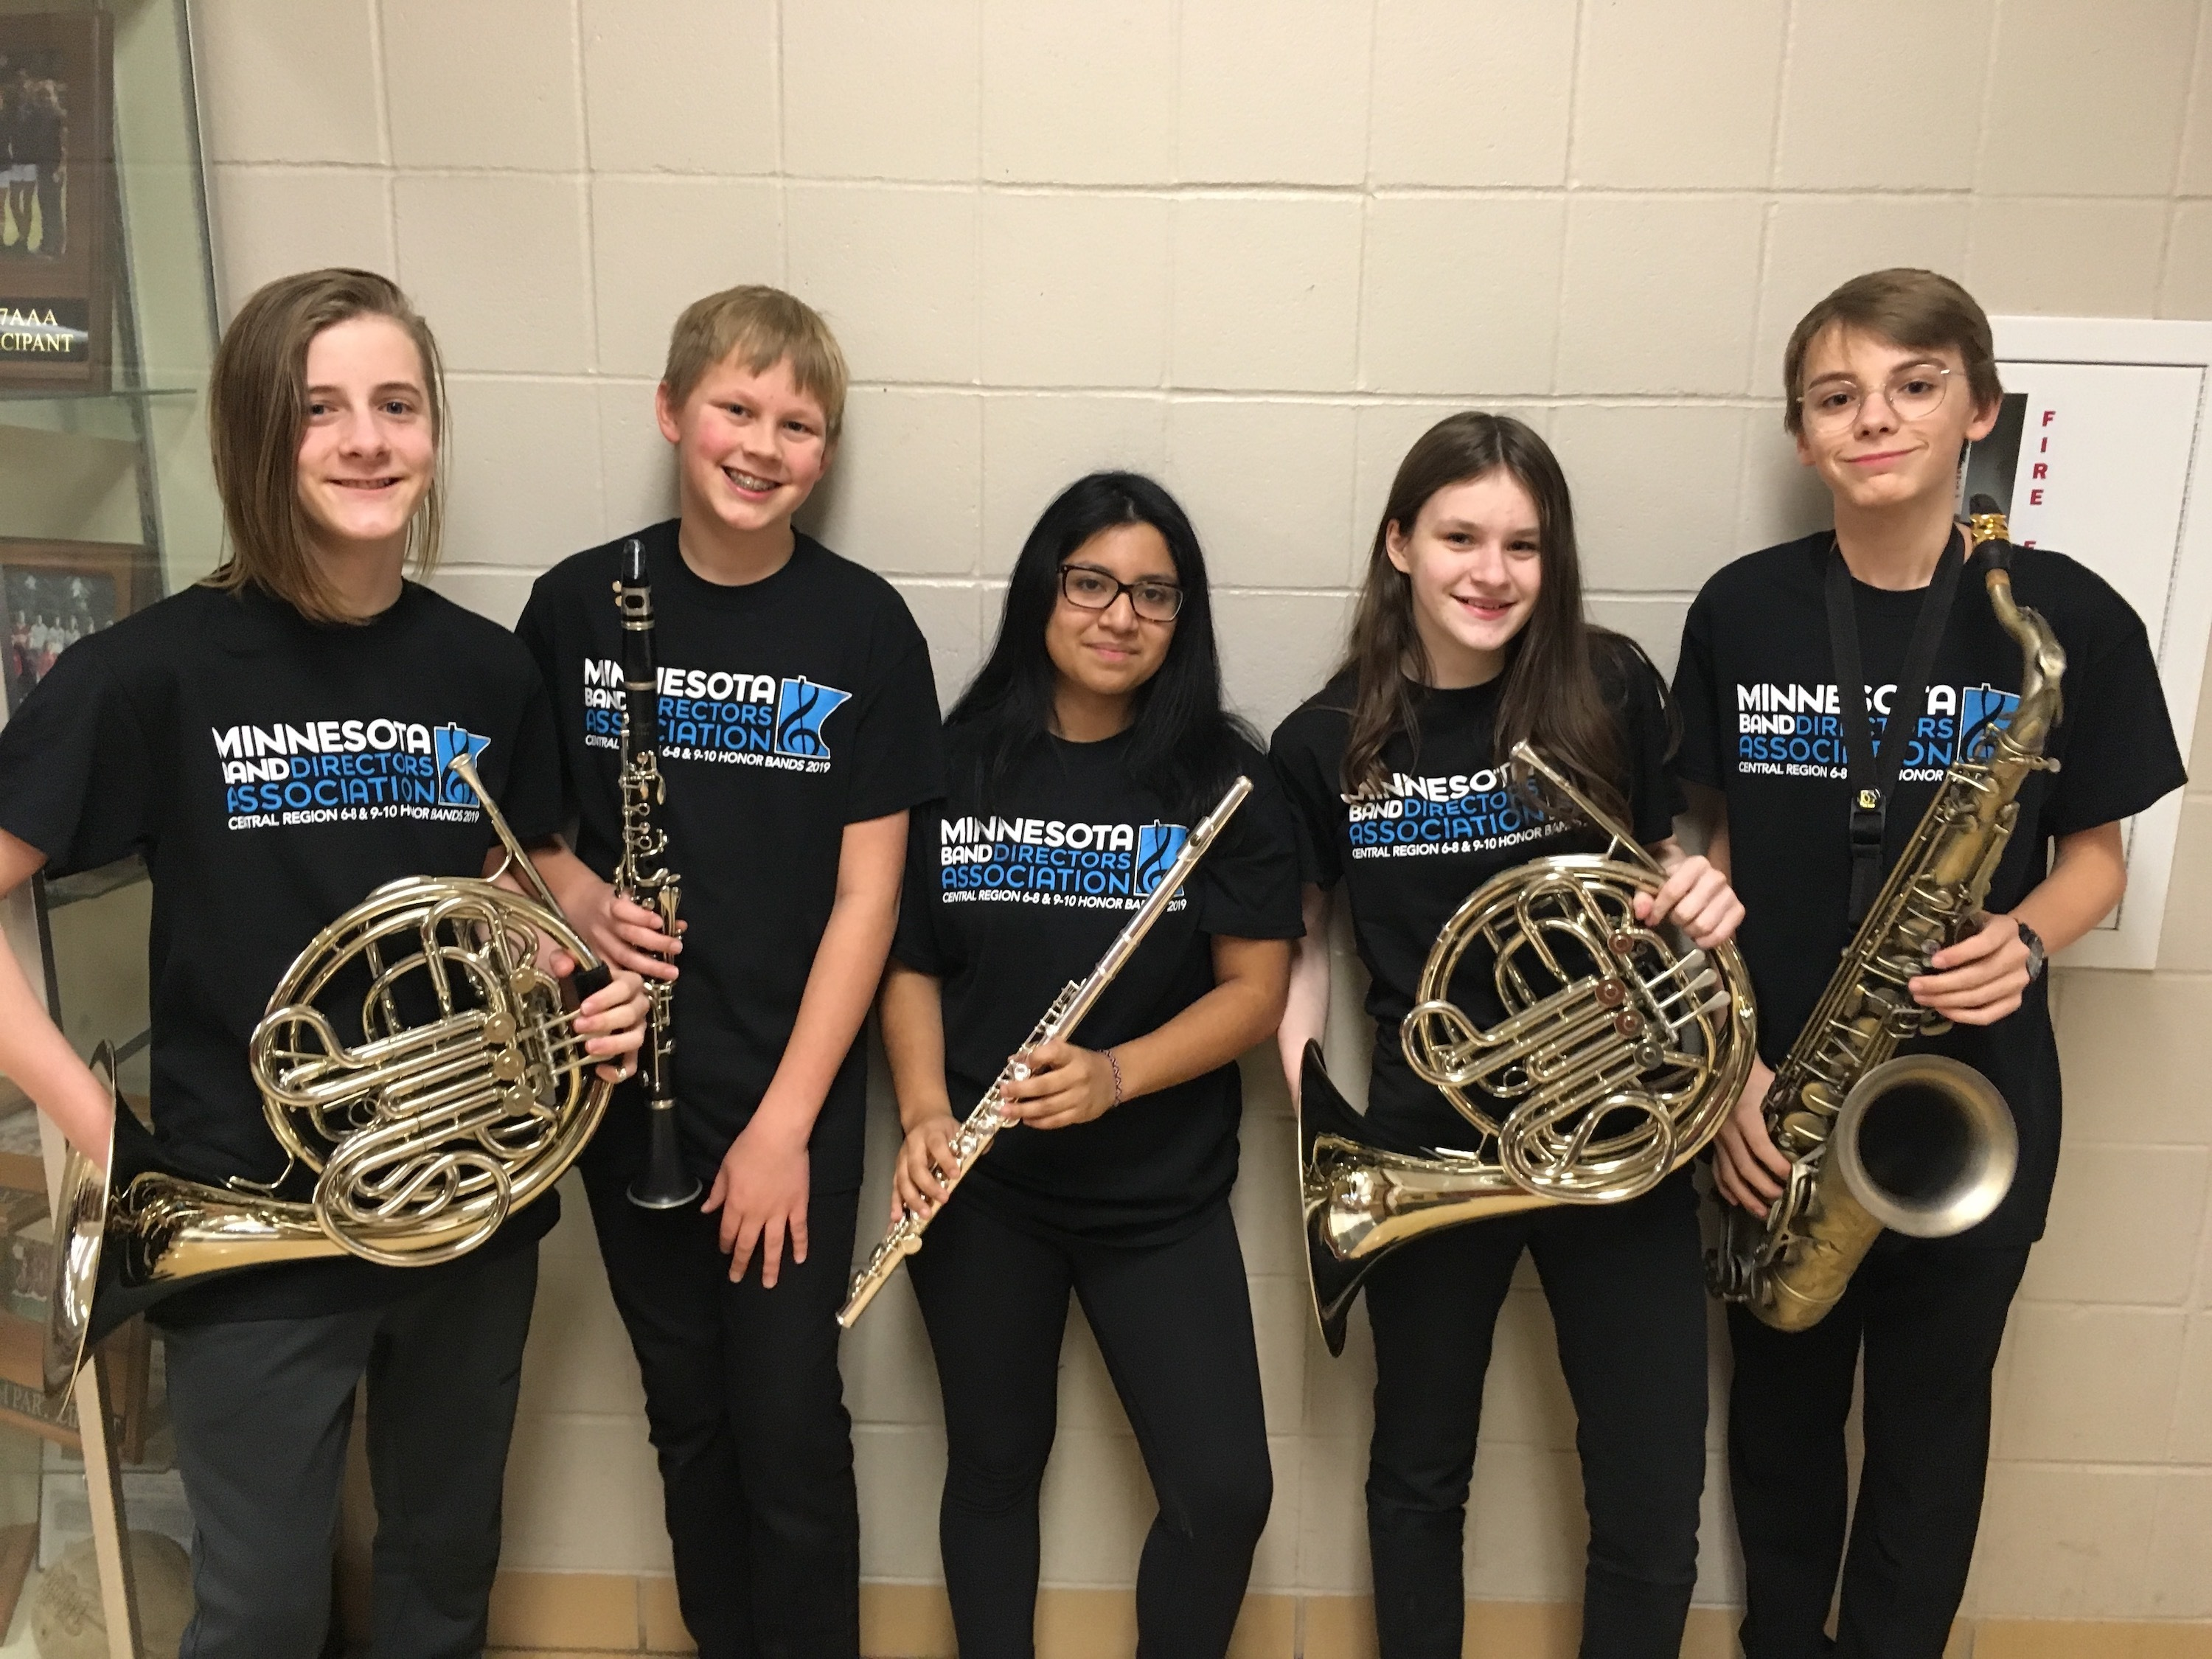 January 15 honor band for merit